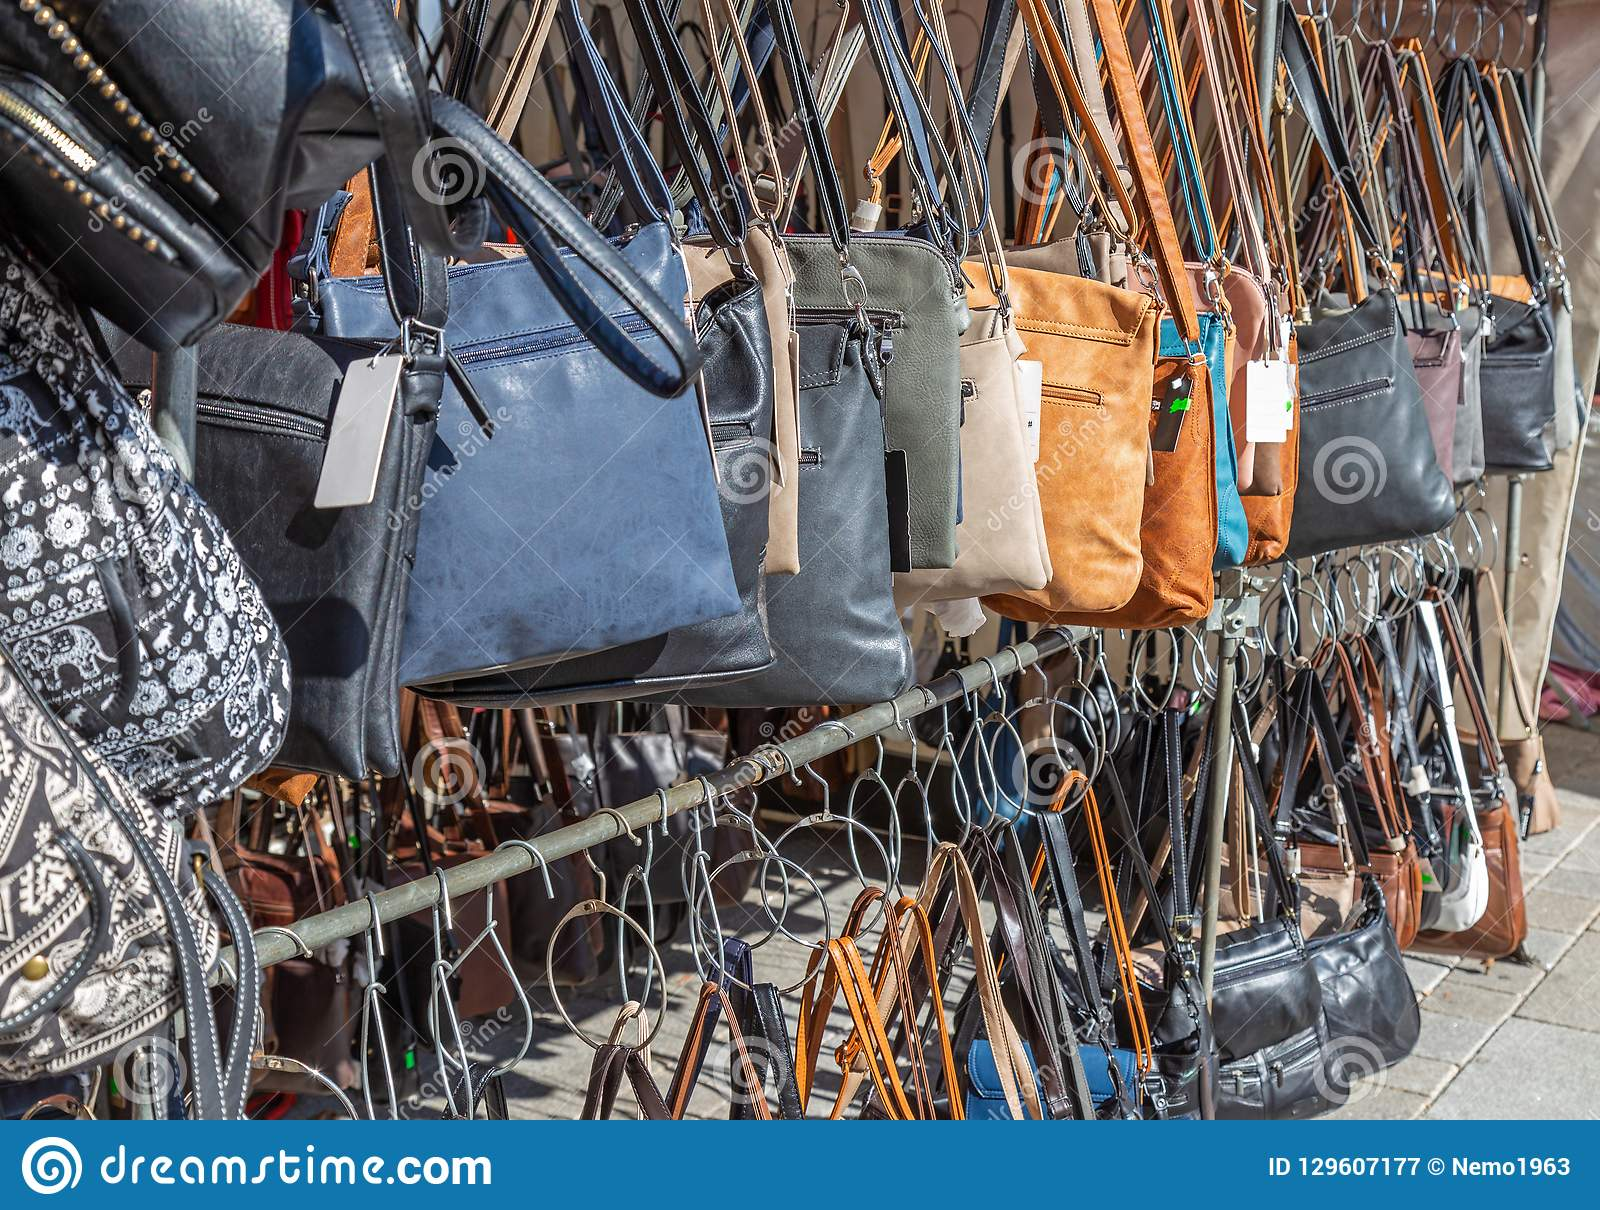 3268d053 Handbags for sale stock image. Image of german, germany - 129607177